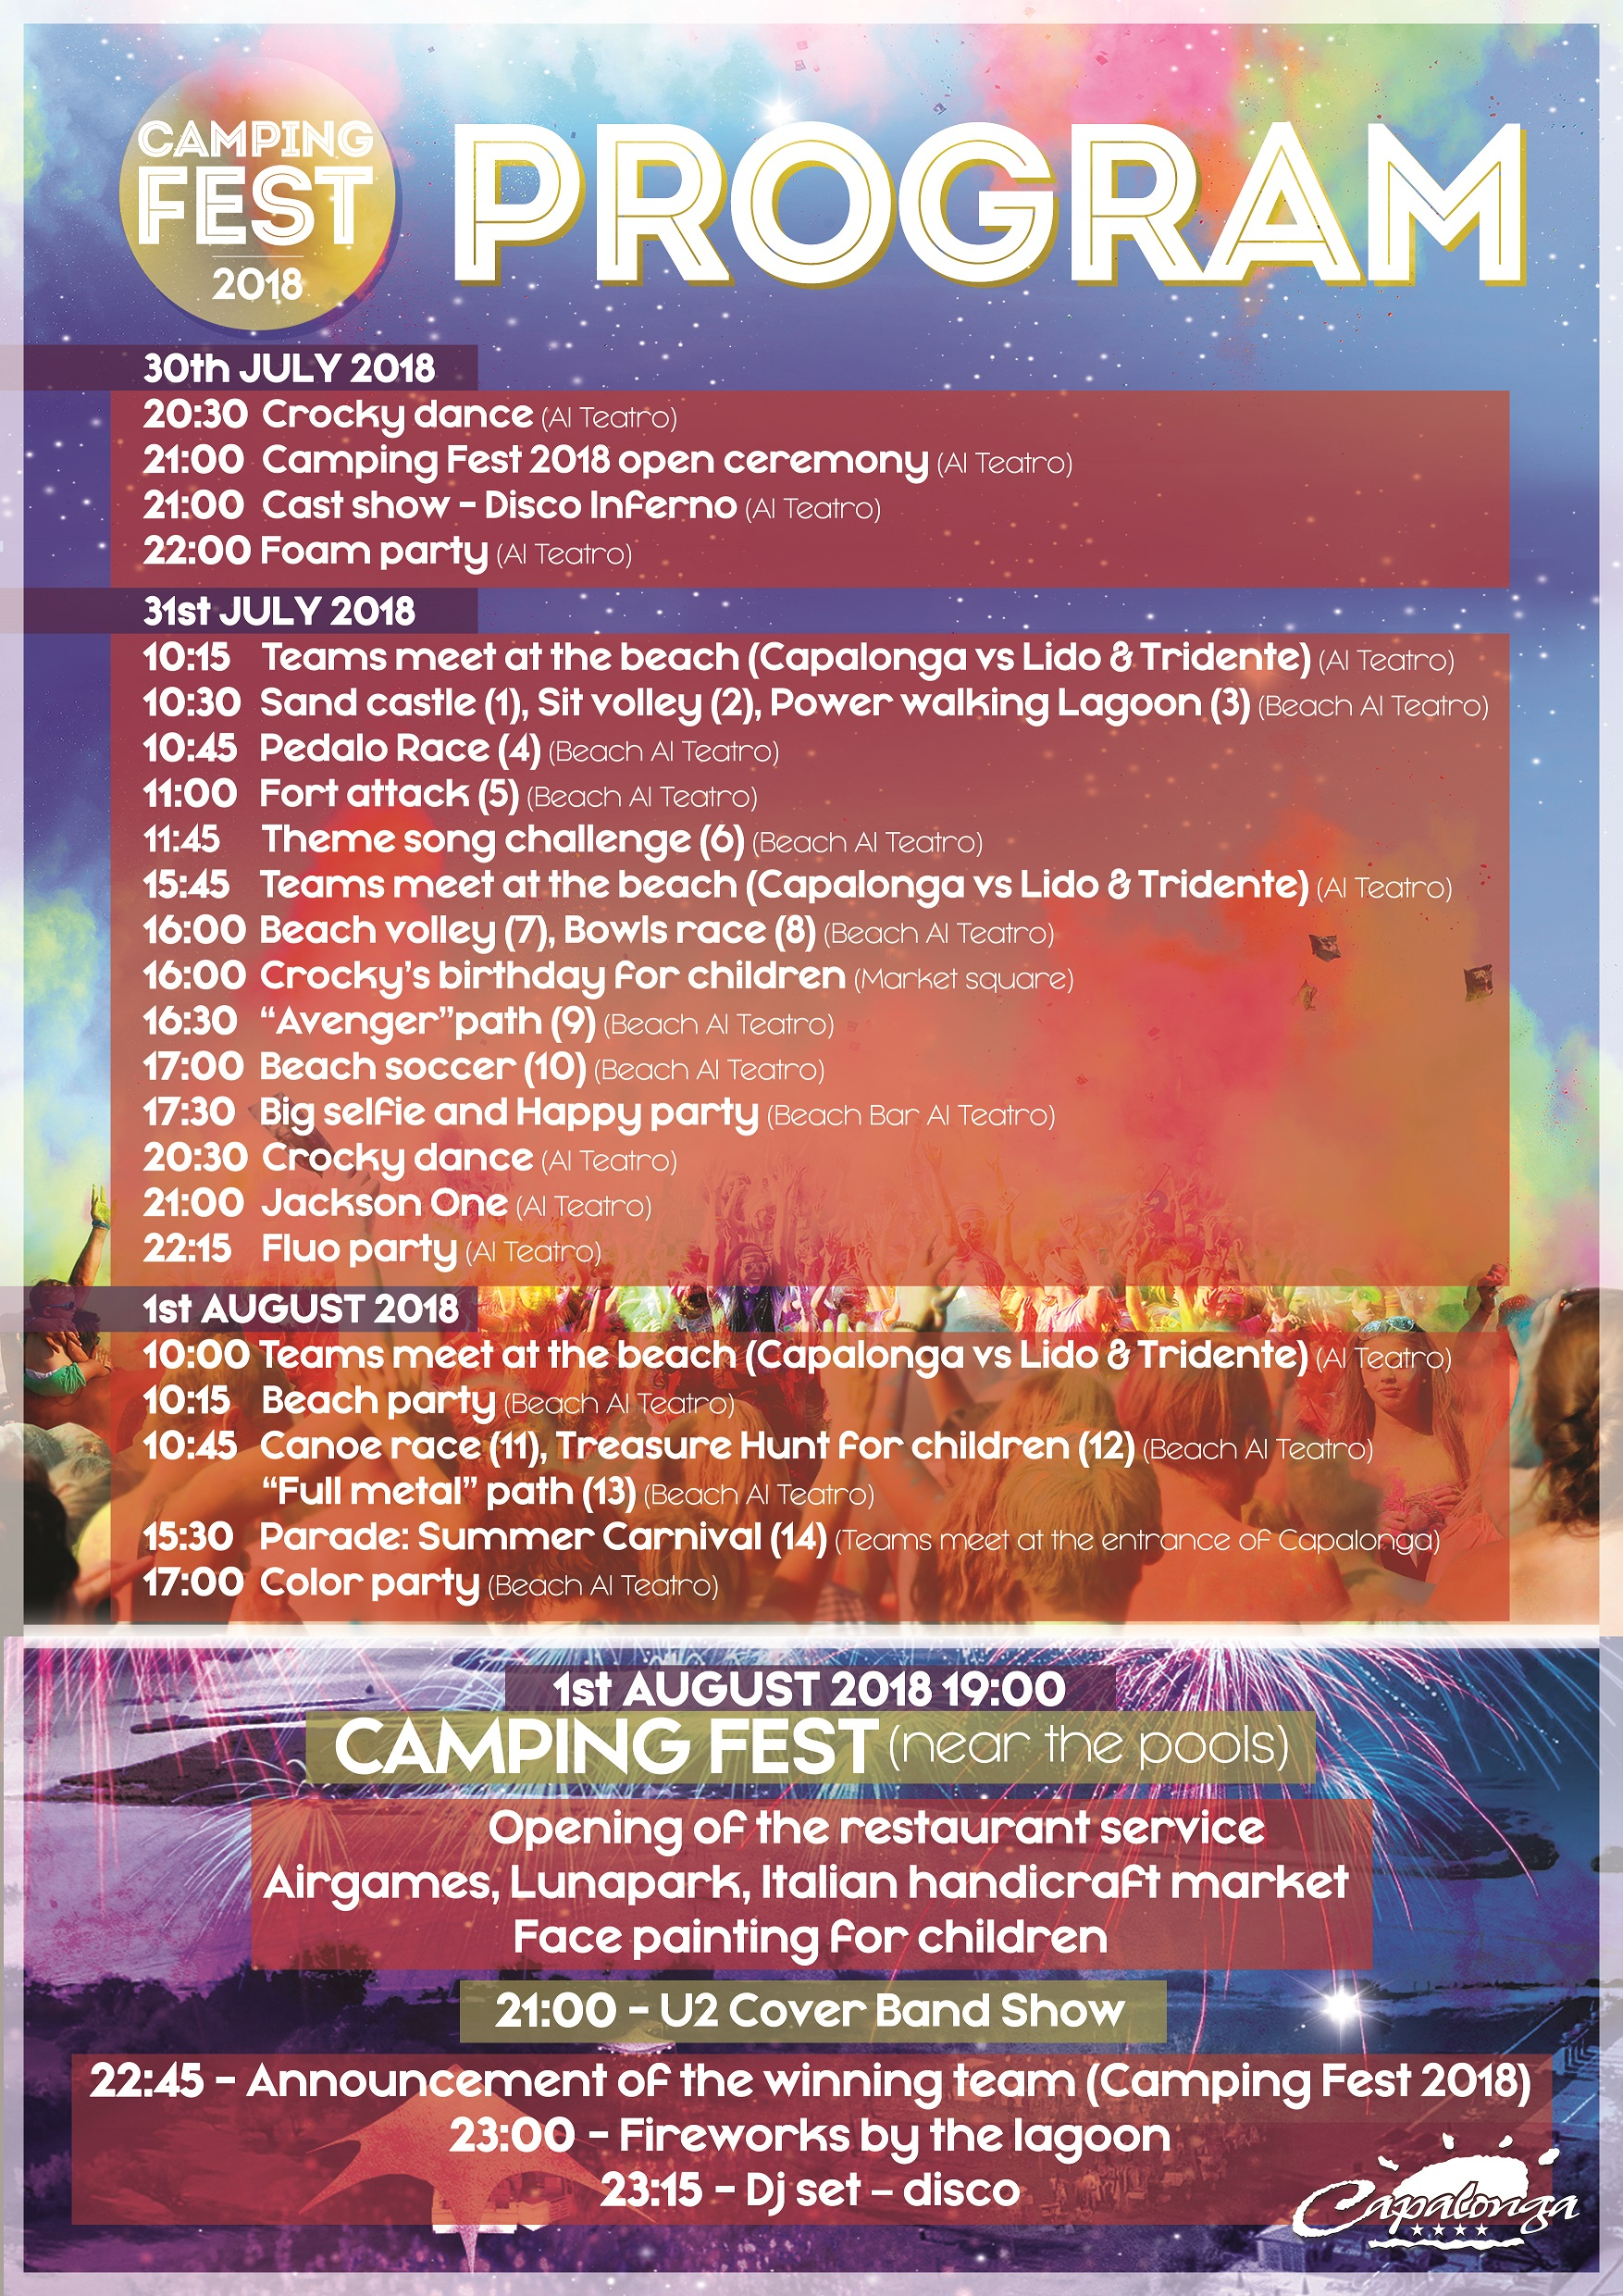 CAMPING FEST 2018!